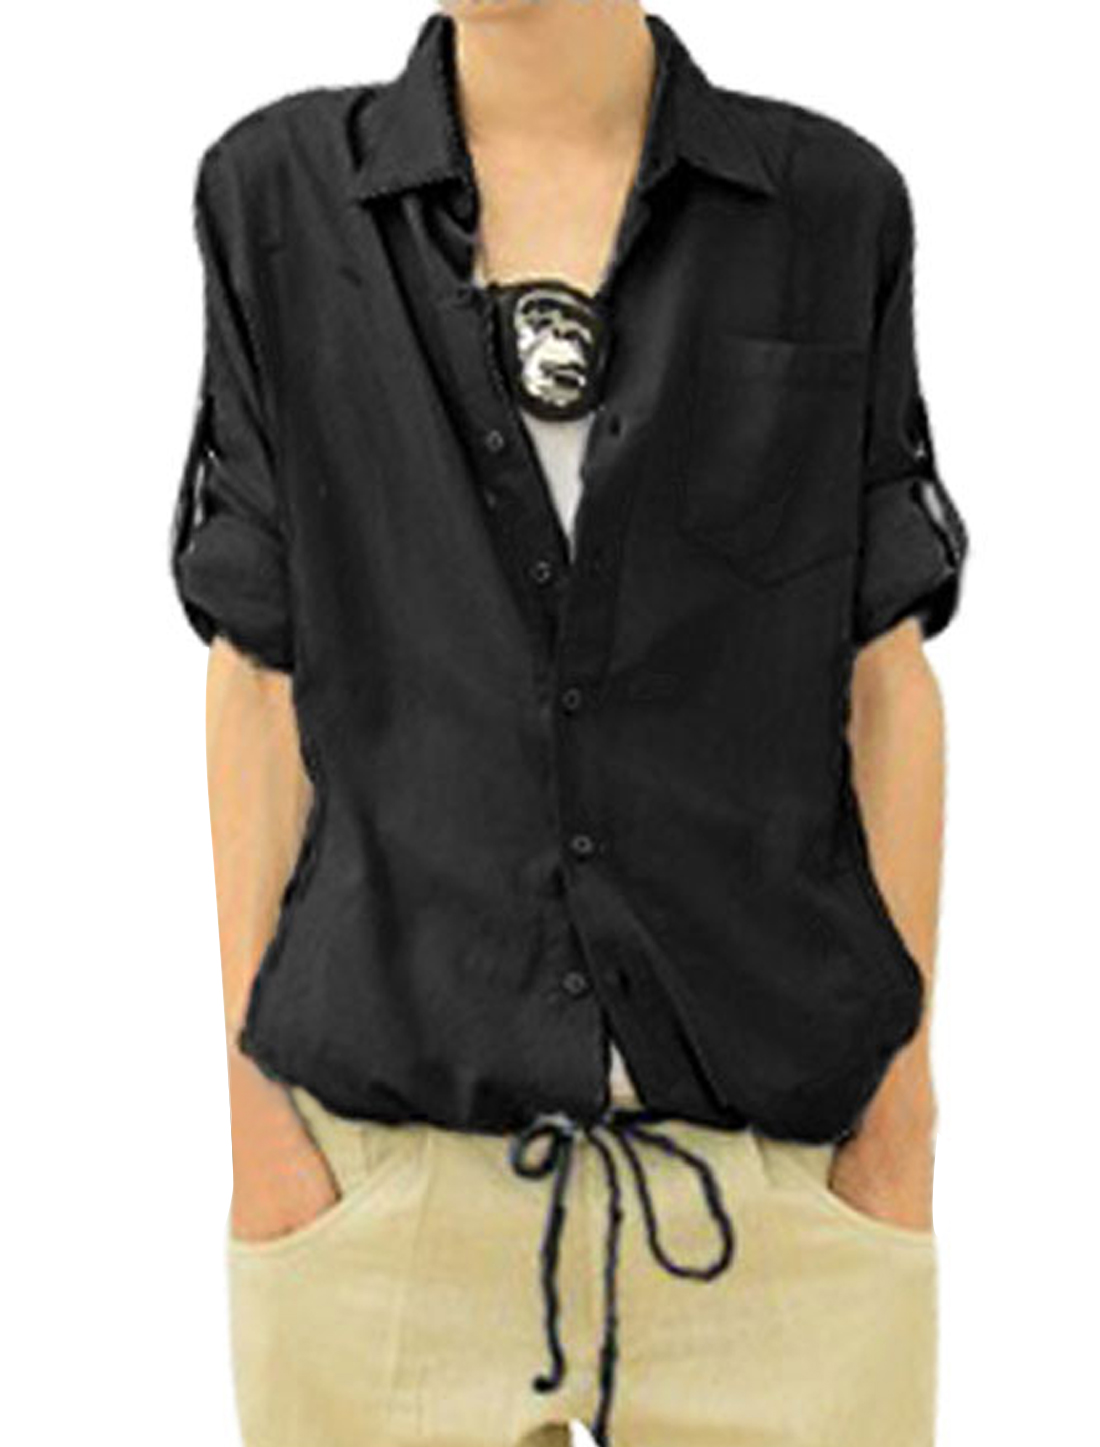 Mens NEW Roll-up Sleeve Summer Casual Shirt Tops Black S